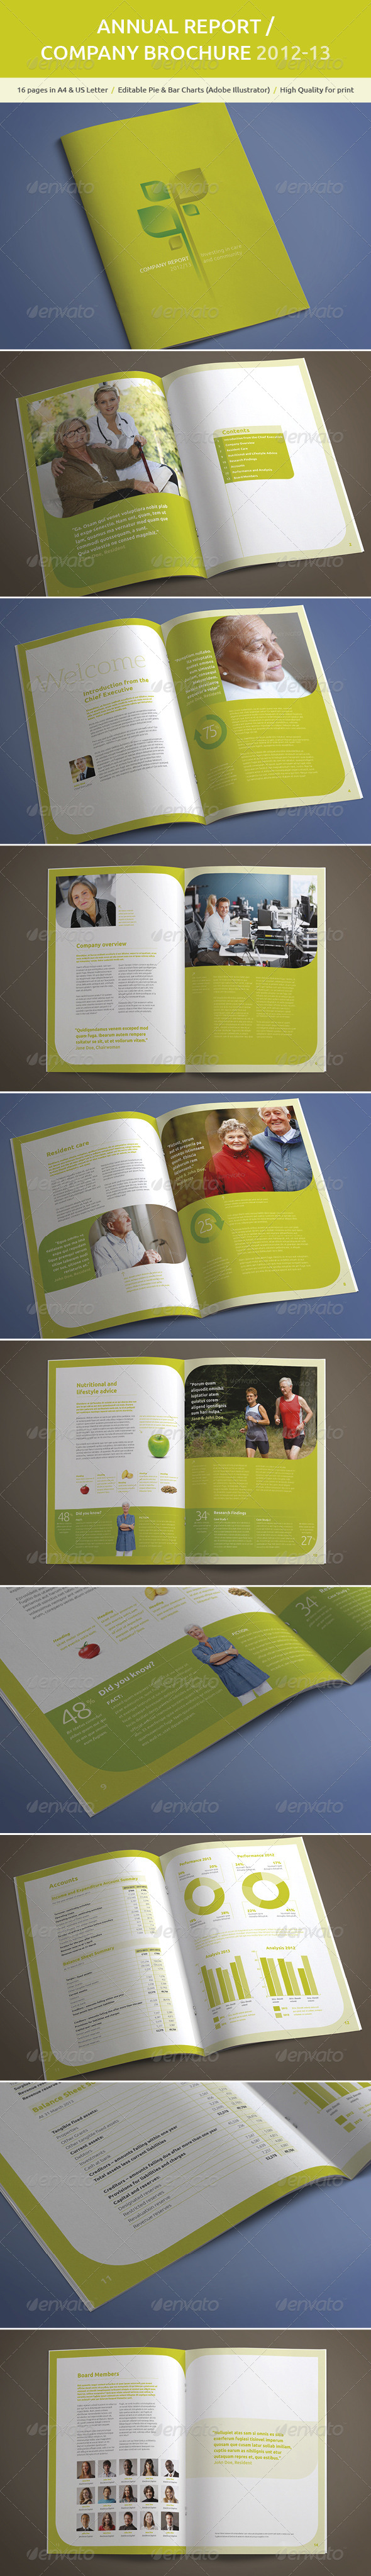 A4 Annual Report Company Brochure